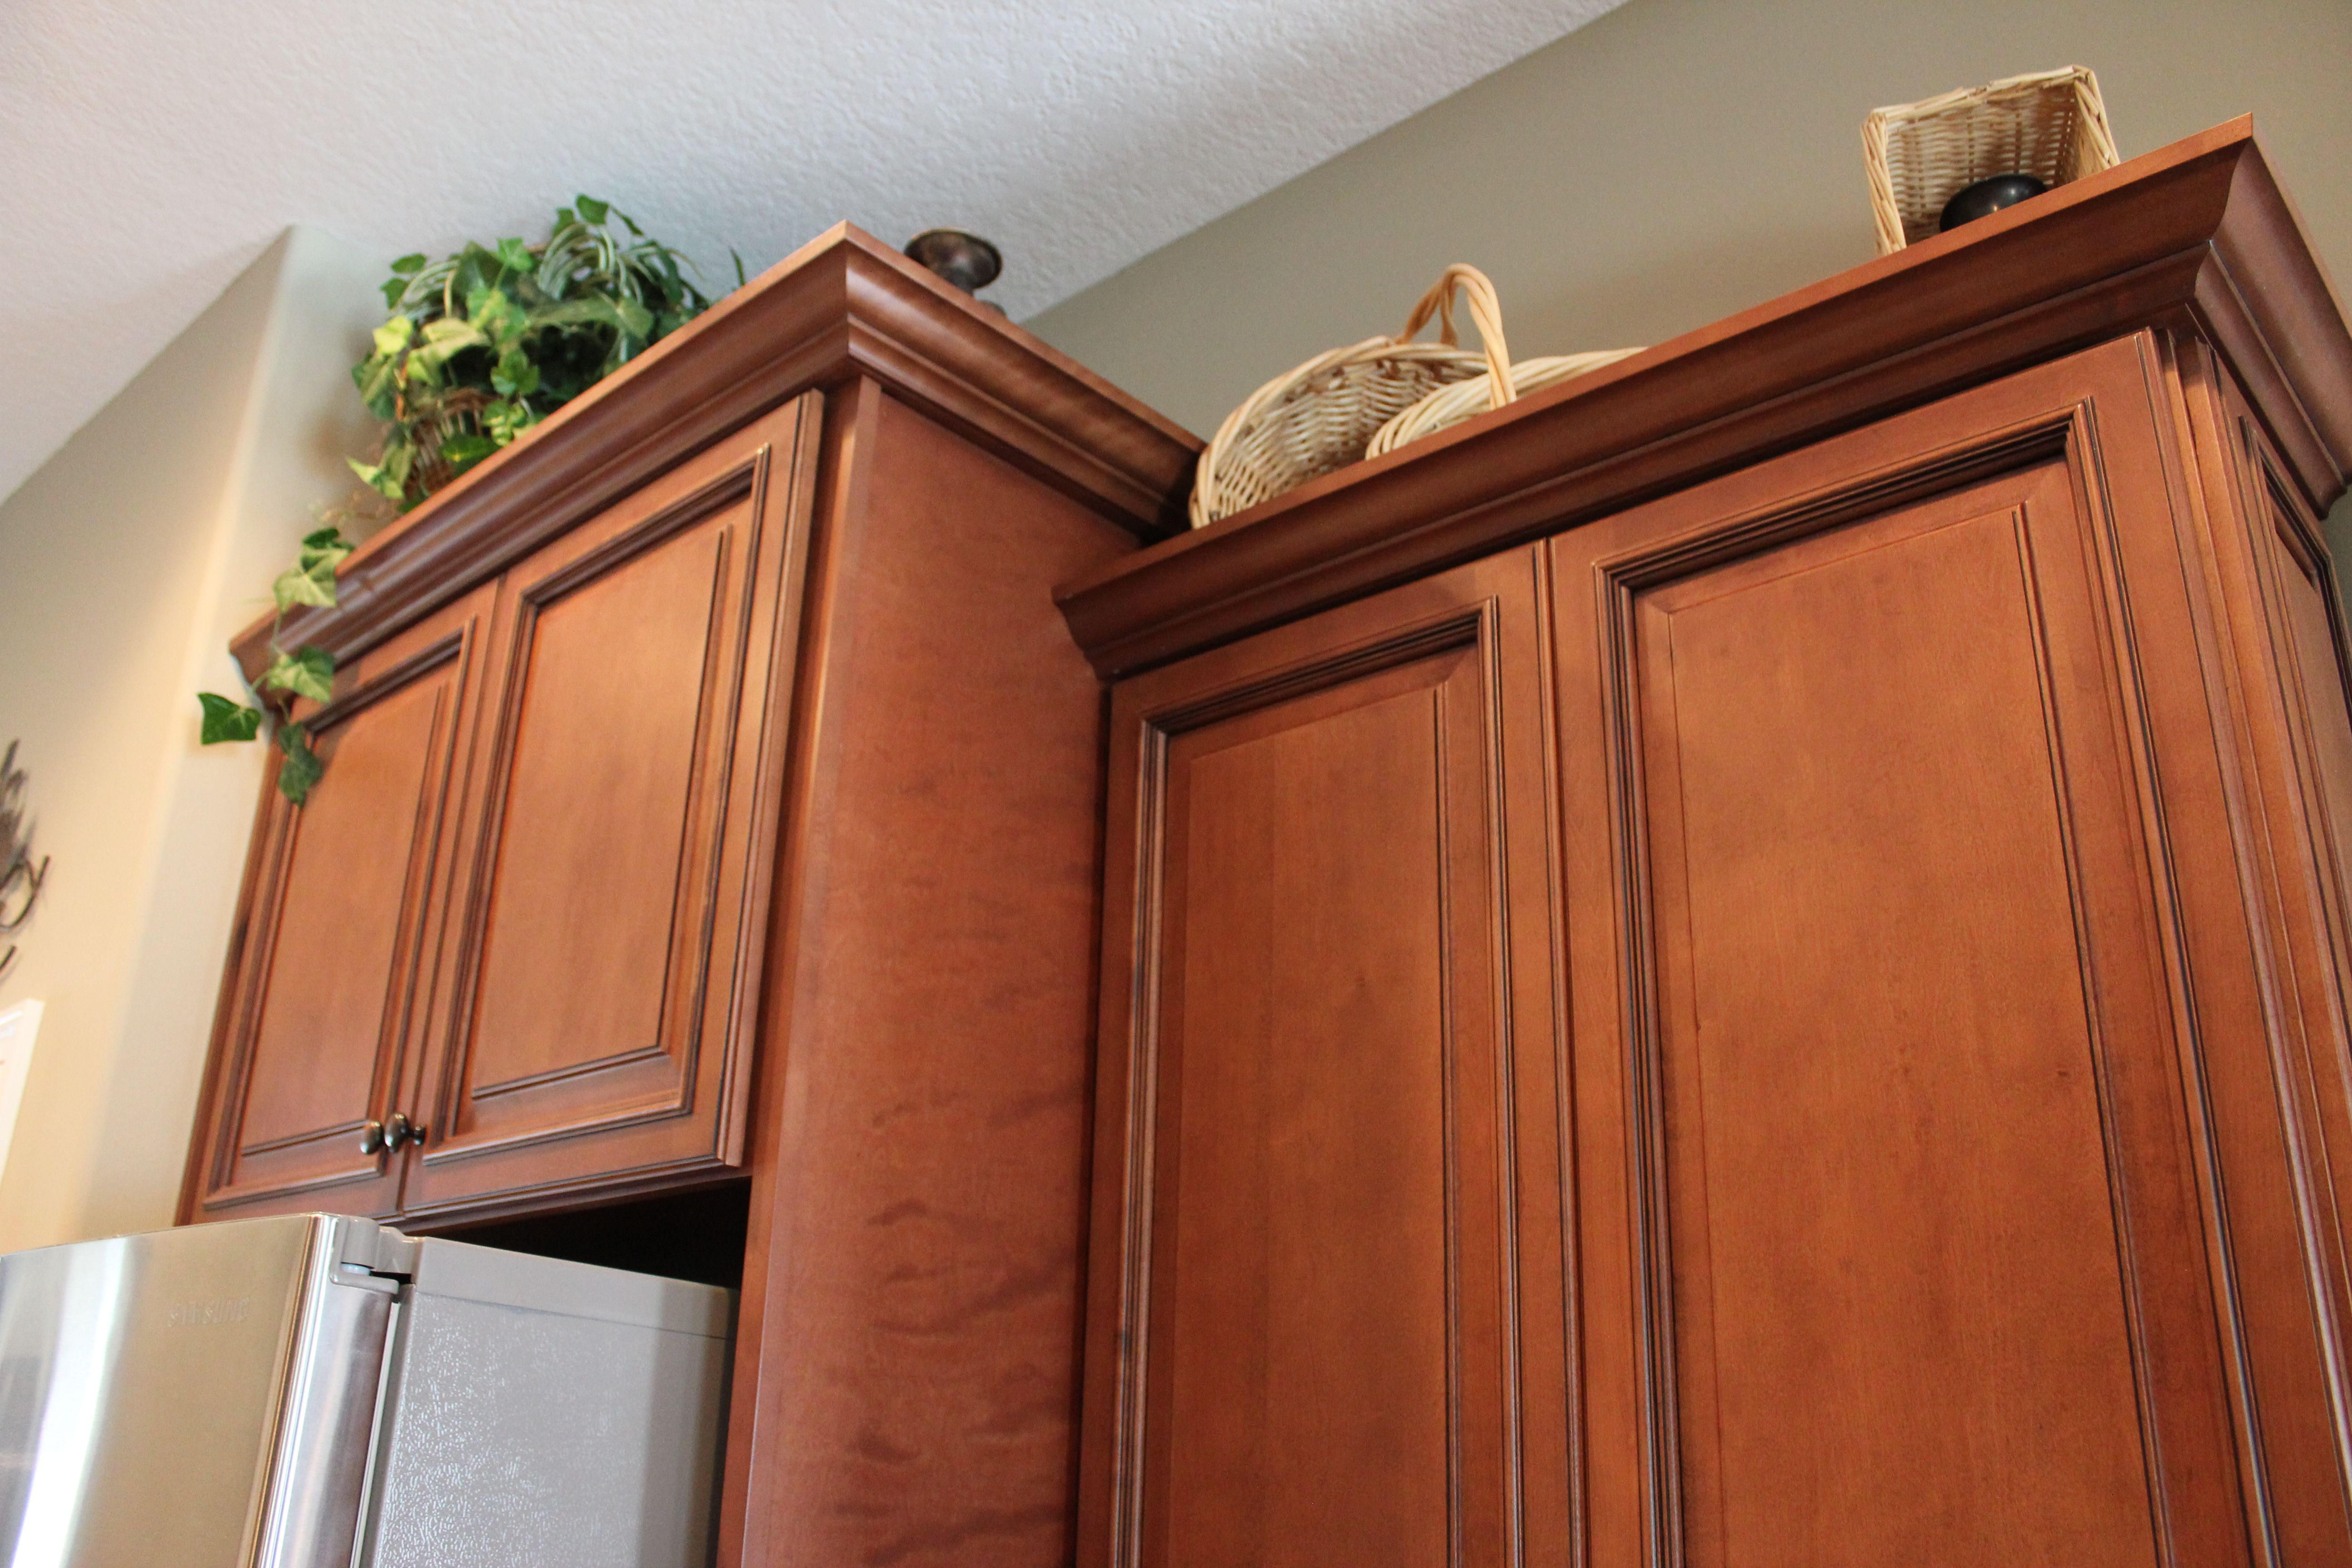 Decorative Molding Kitchen Cabinets Farmers Sink Fabuwood Cabinetry Wellington Door Style Cinnamon Glaze